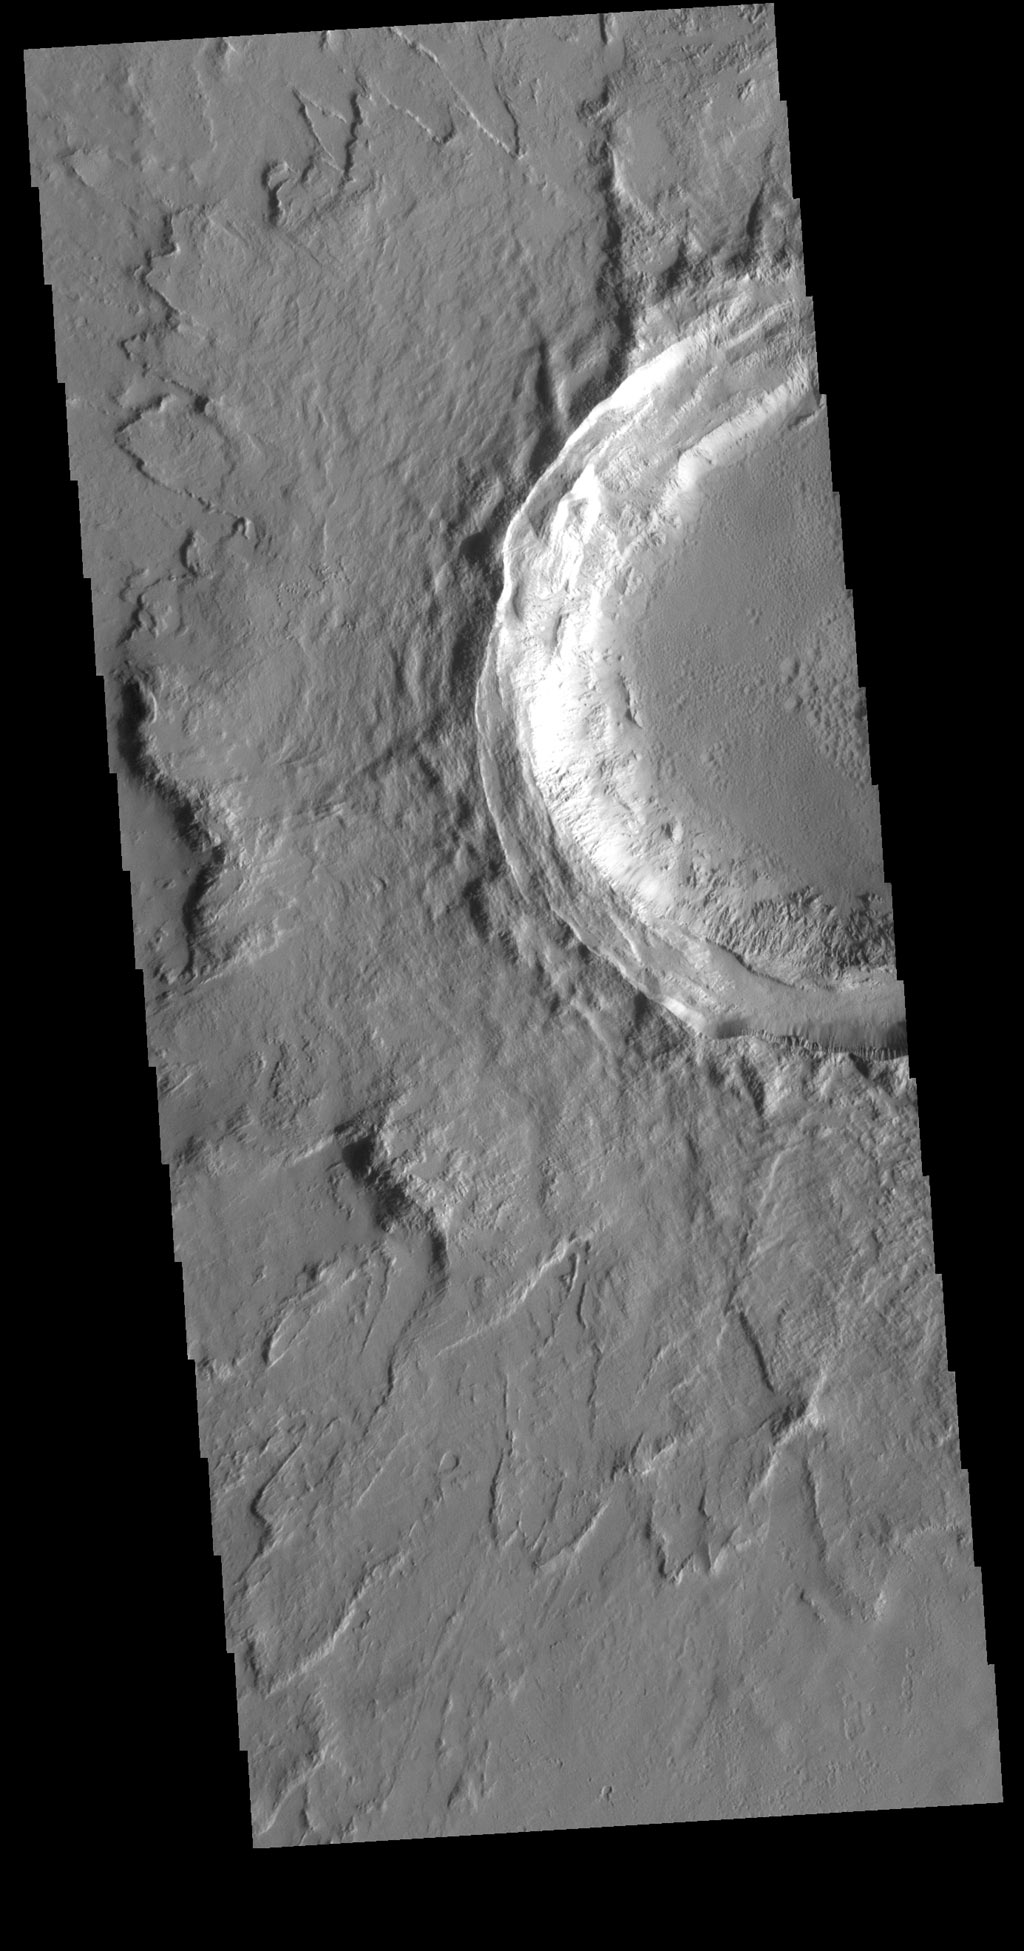 Crater in Tharsis